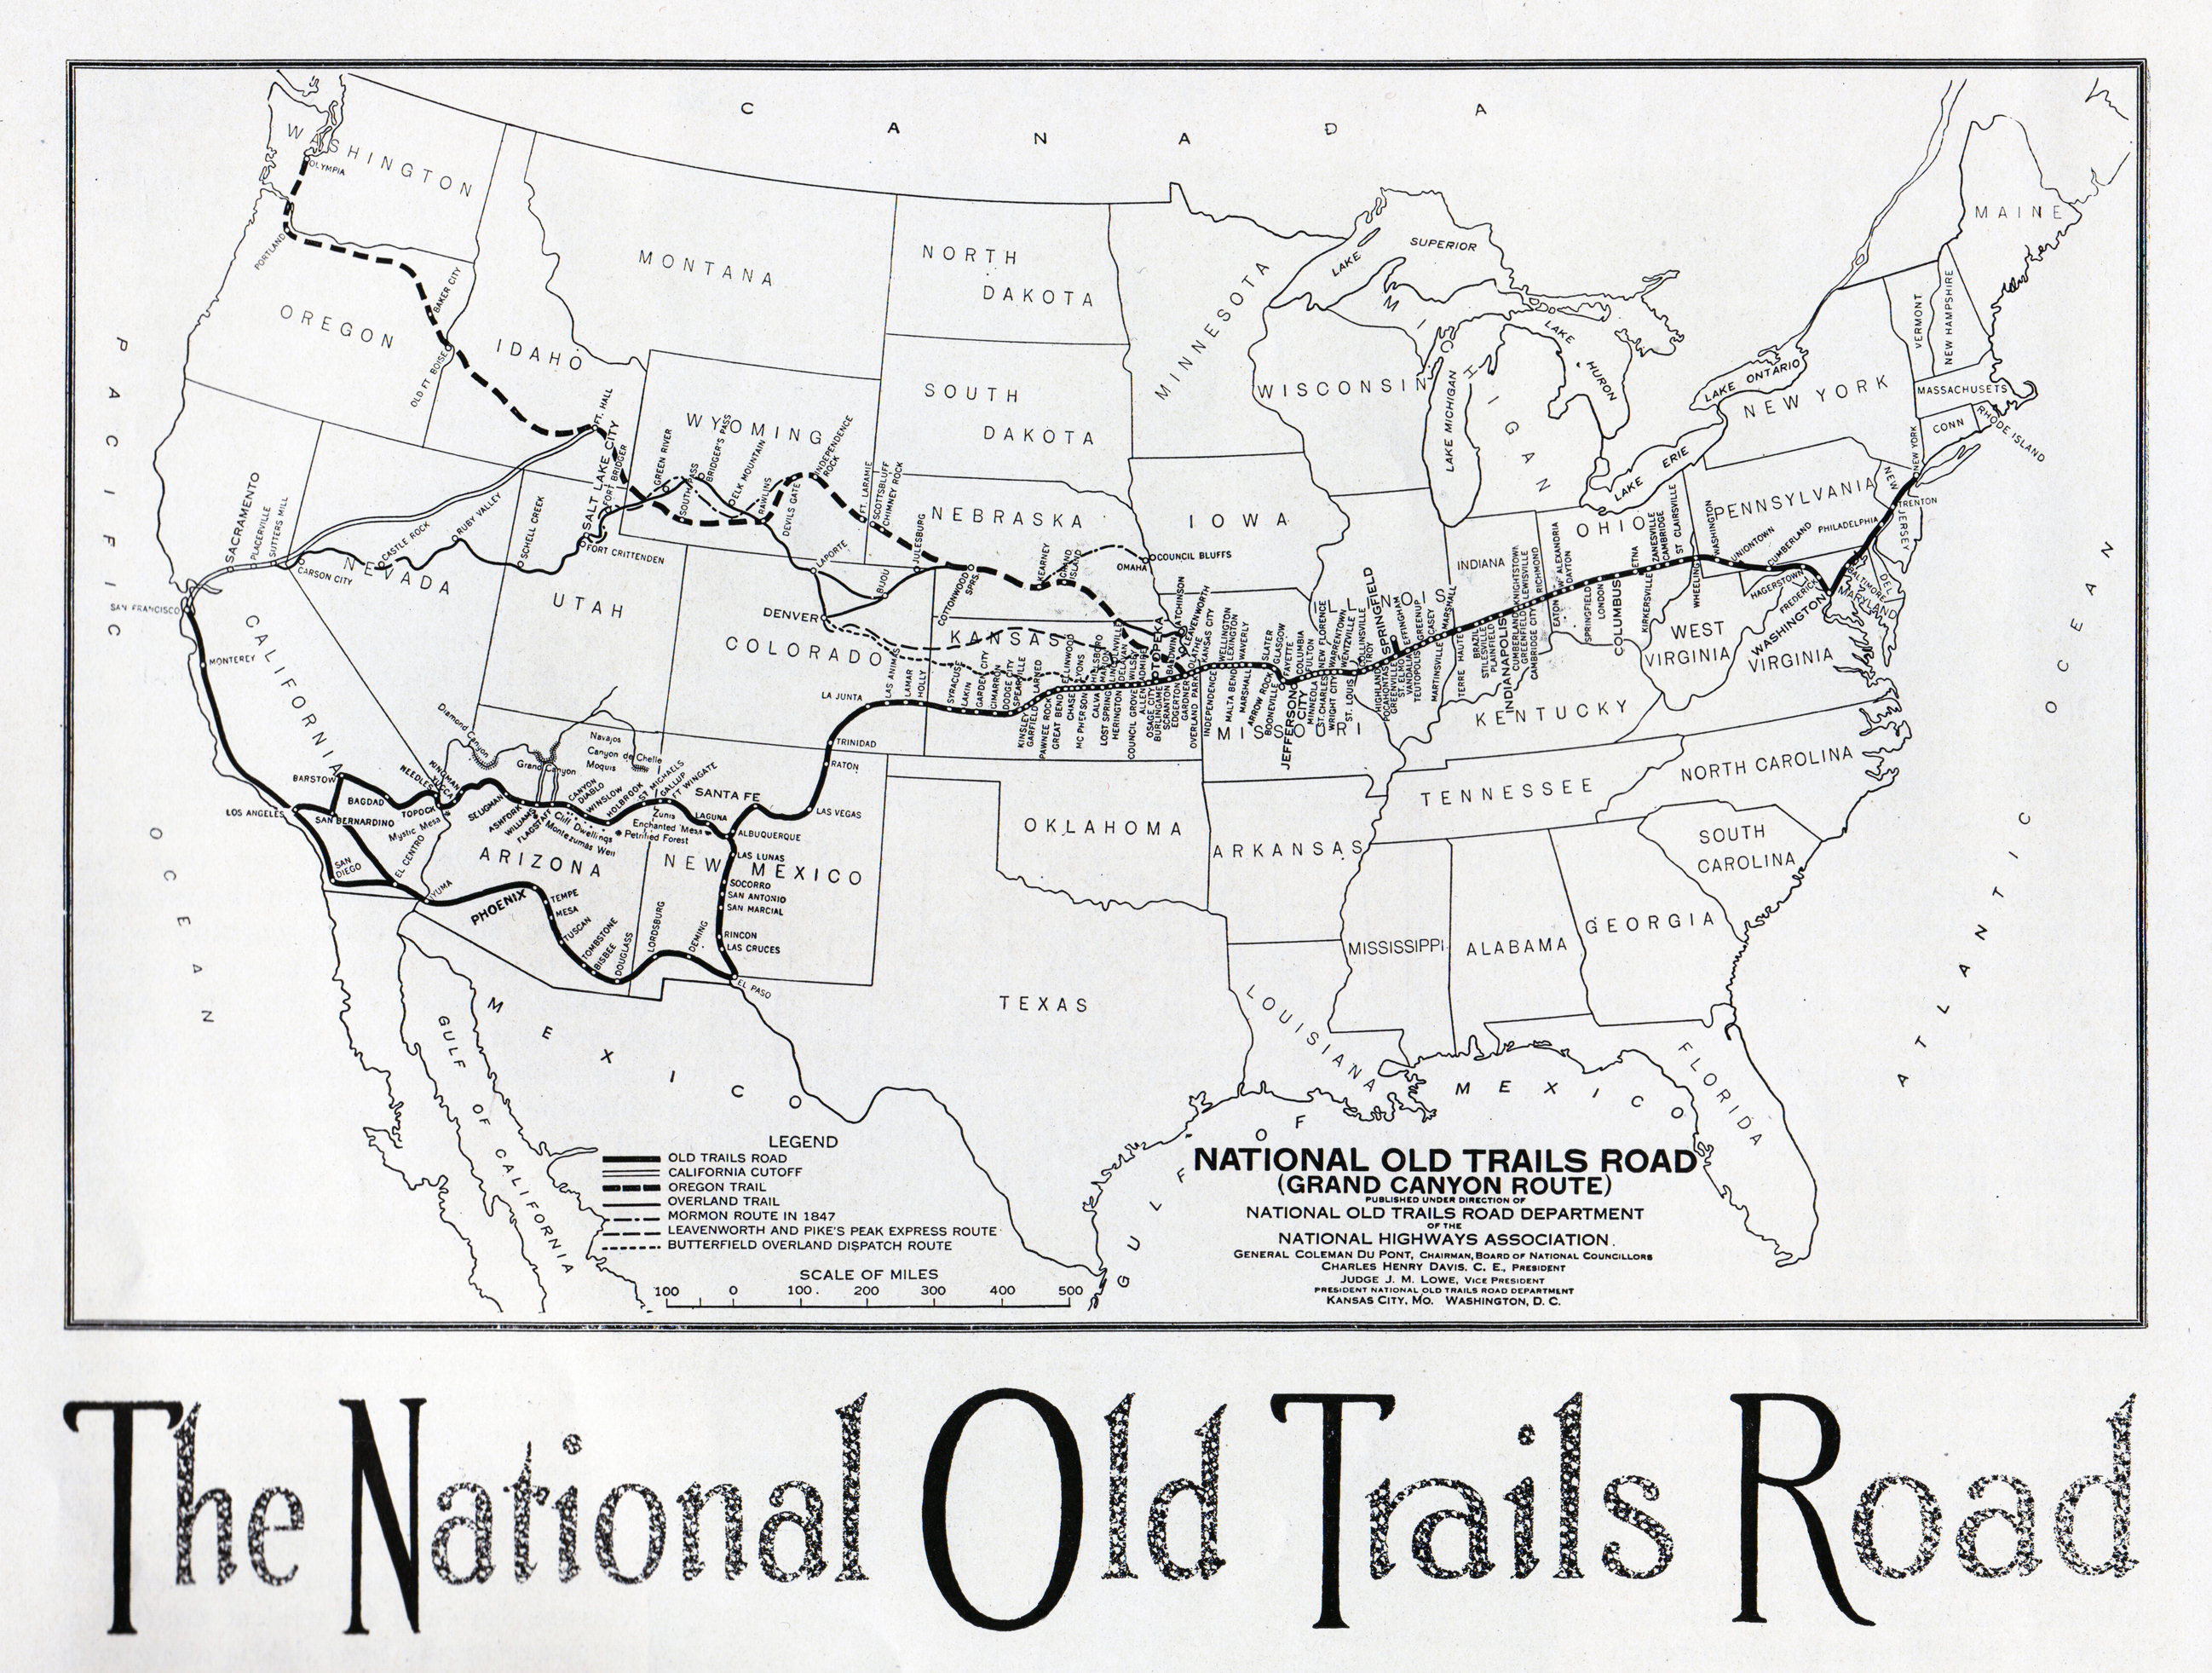 https://i1.wp.com/www.americanroads.us/photos/articleimages/Travel_1915_NOTR_Map.jpg